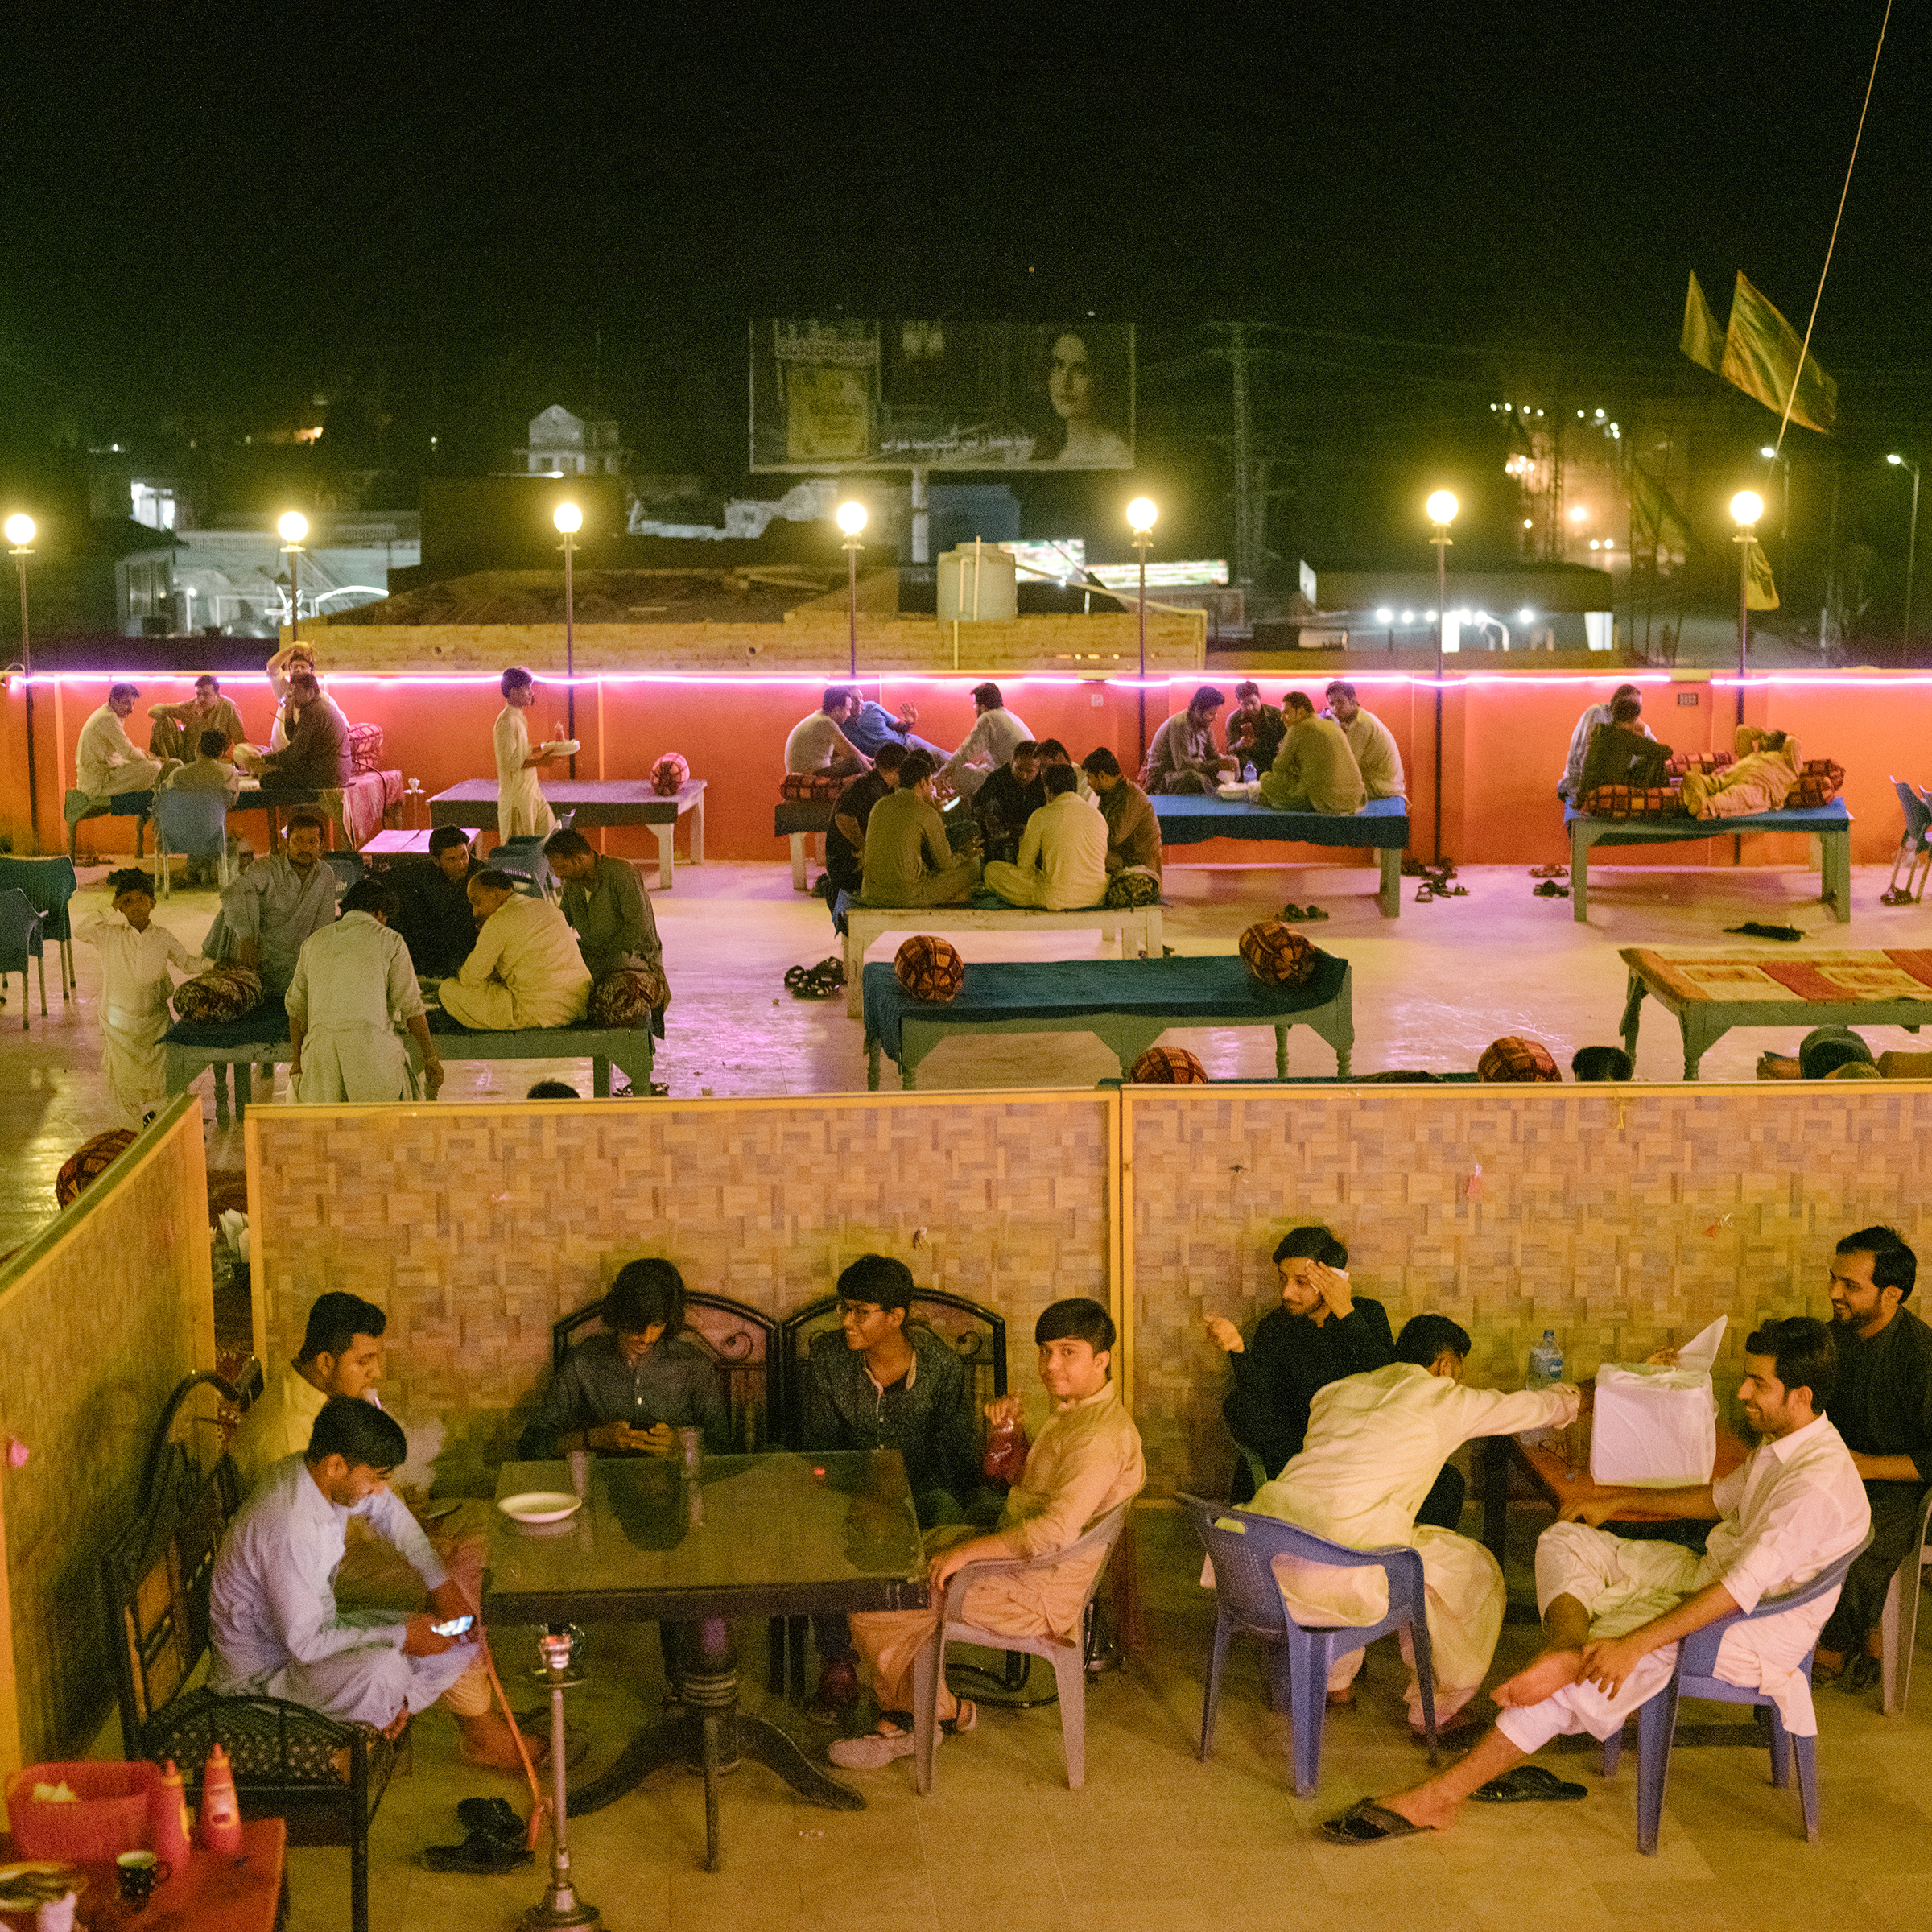 Outdoor restaurants, like this one in Jacobabad on June 27, are only open after sunset. Patrons may stay late into the night.